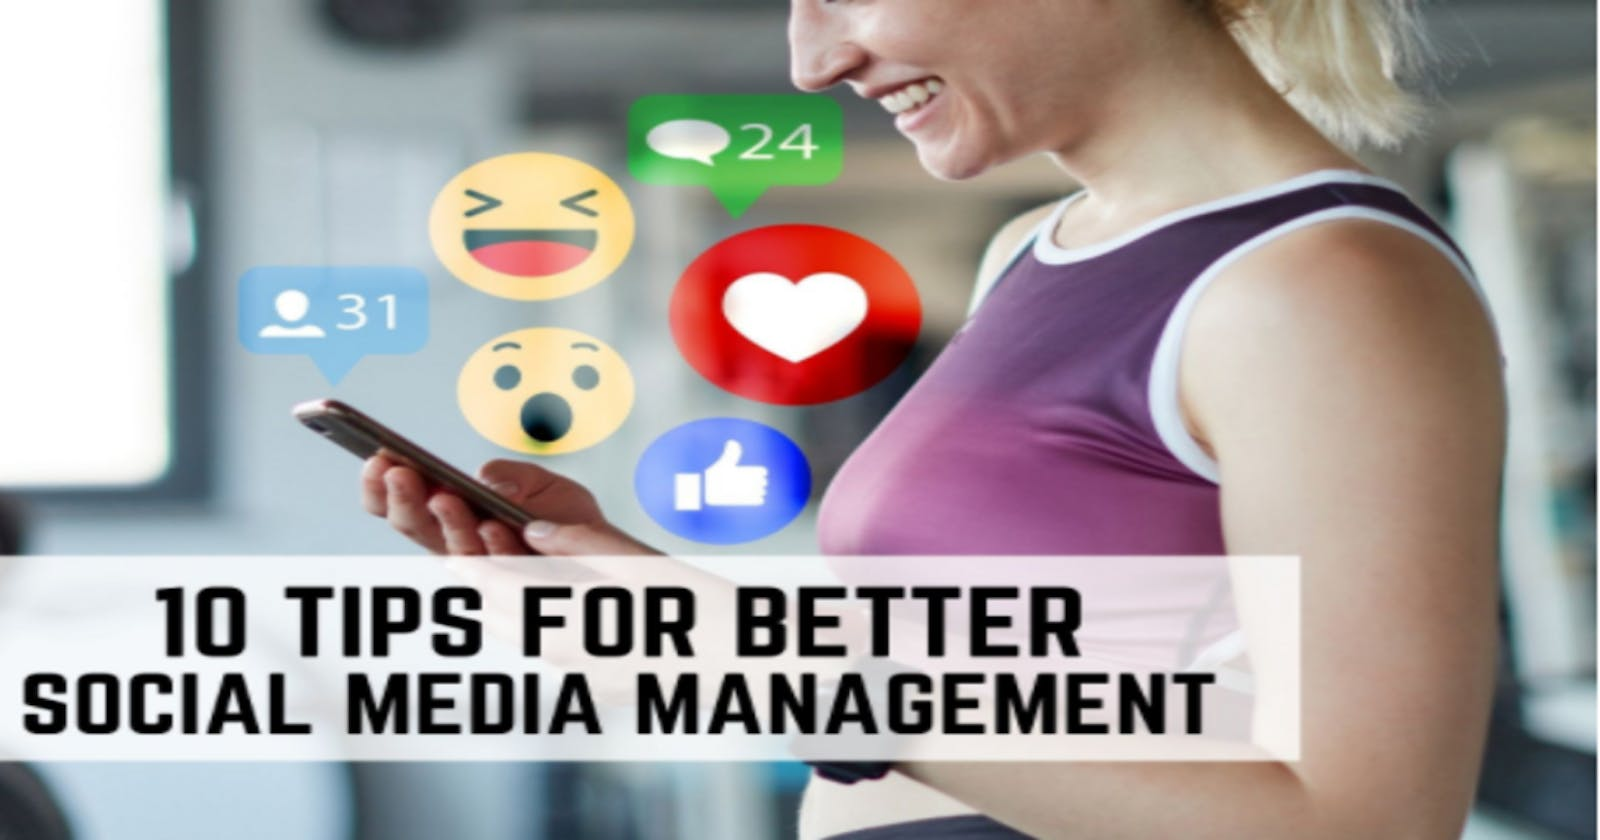 10 Crucial Tips For Better Social Media Management [Plus Tools]